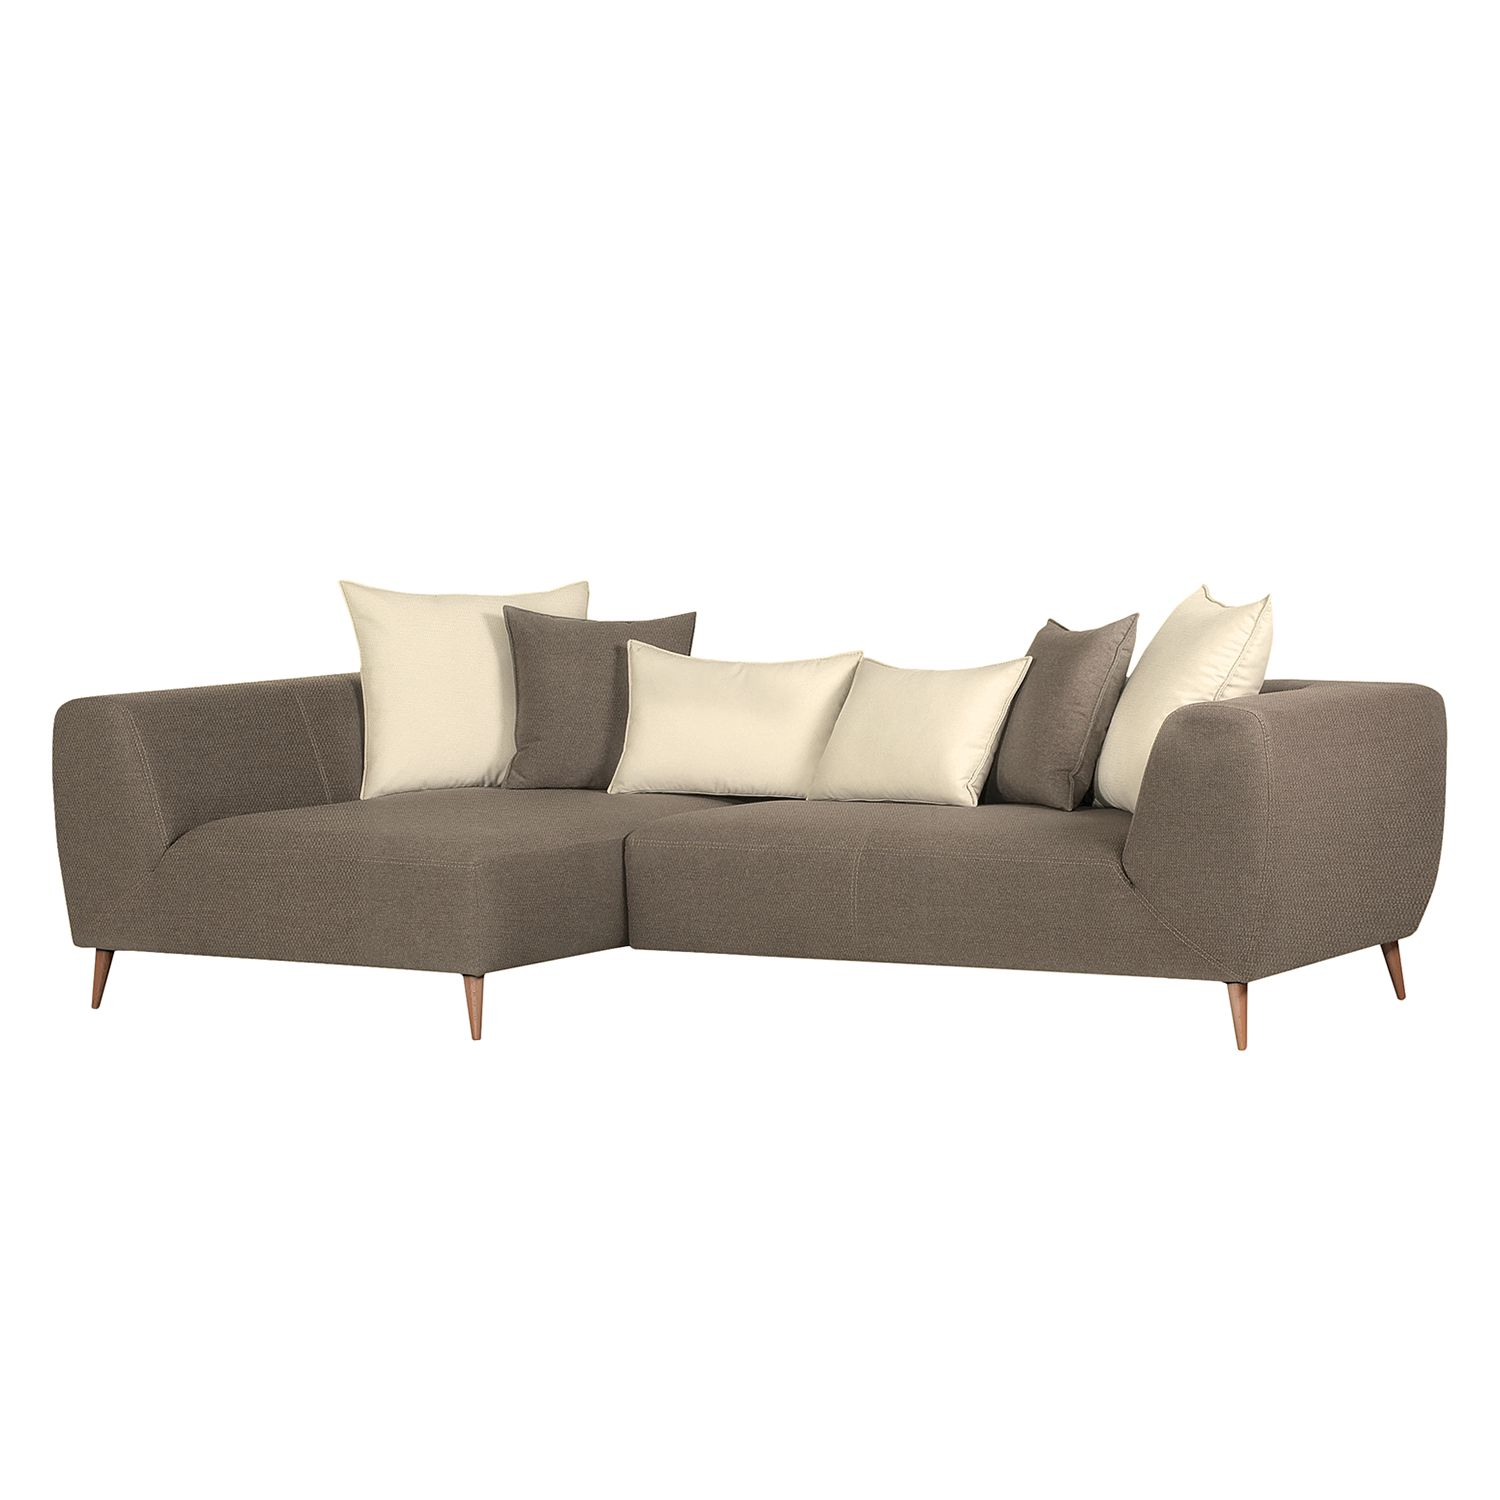 home24 Ecksofa Goodluck Webstoff Taupe